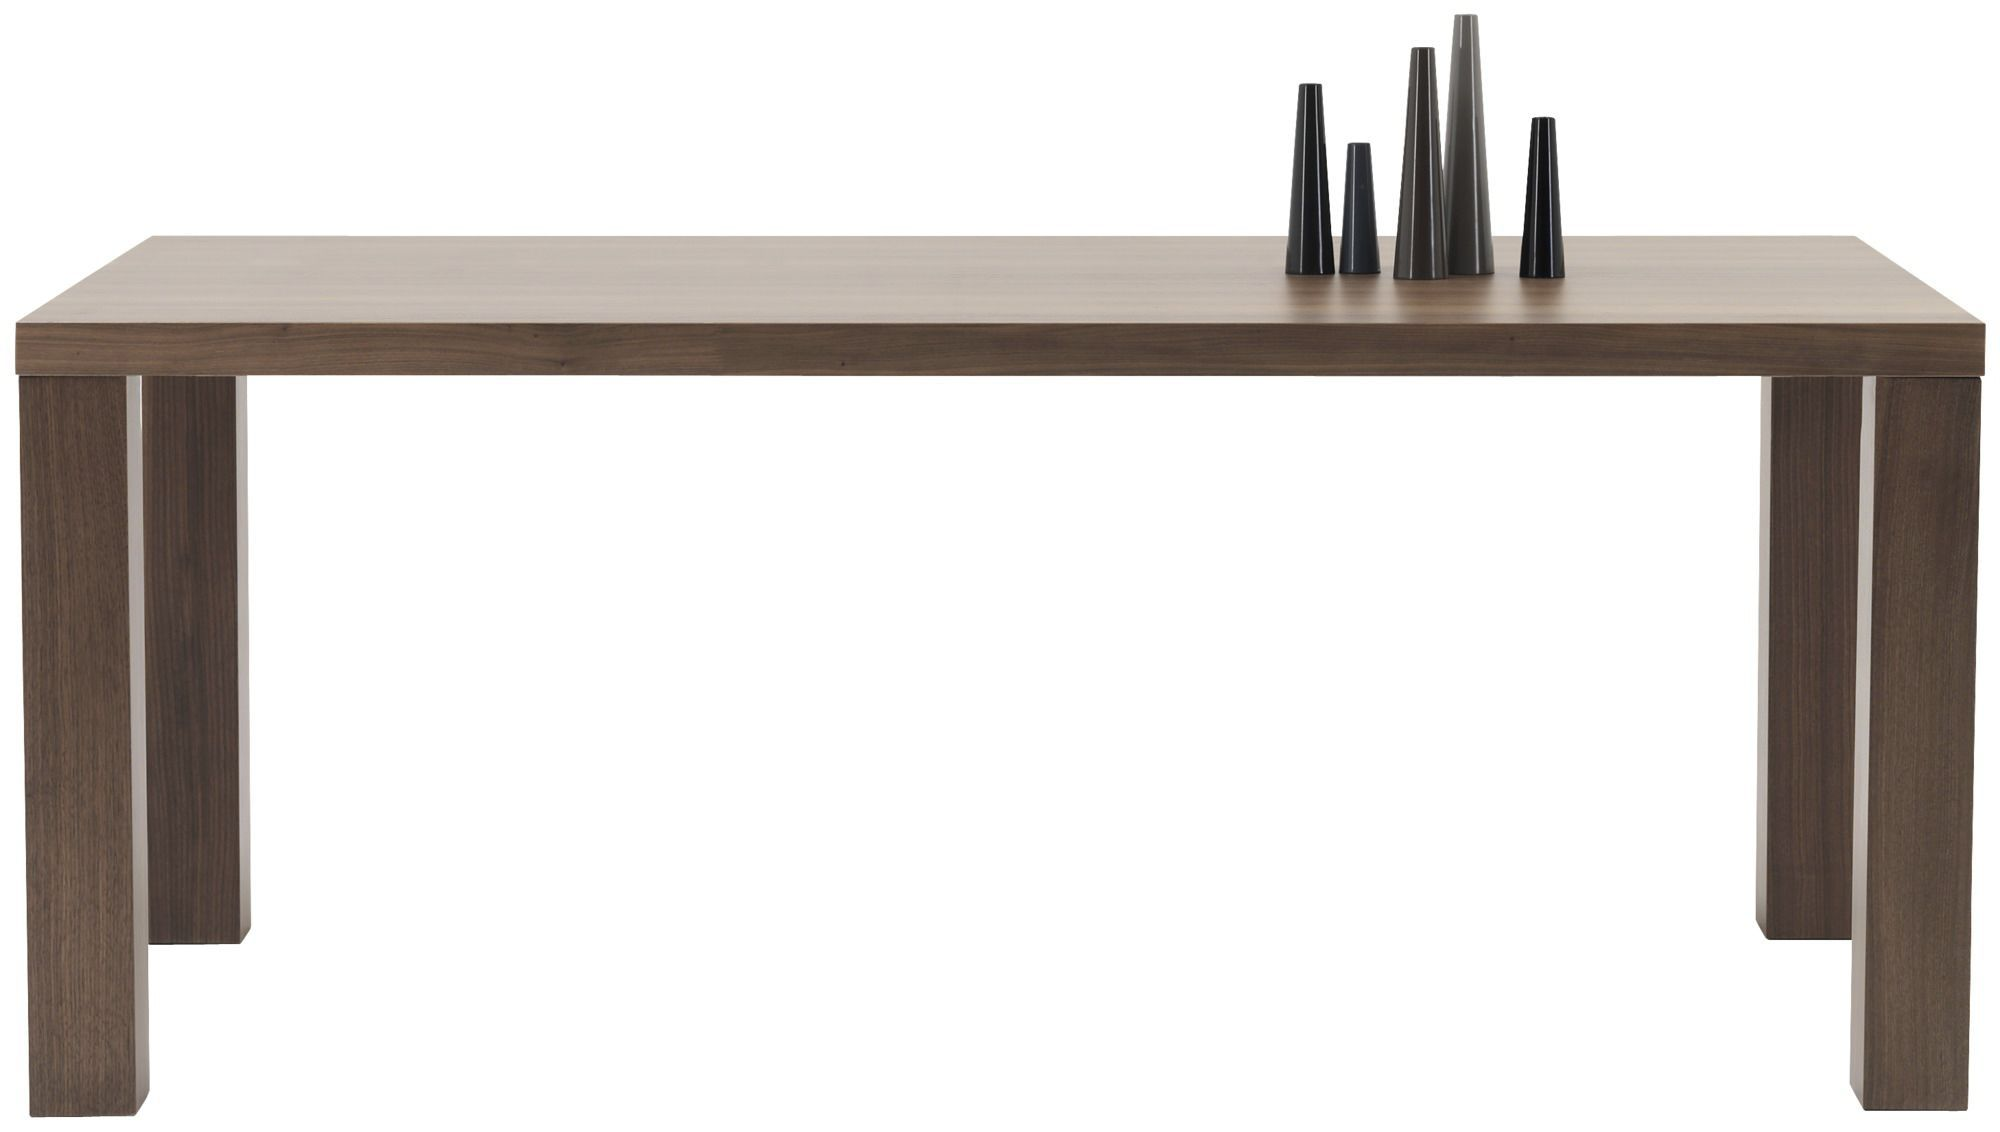 Contemporary dining table / MDF / steel / rectangular - LUGO